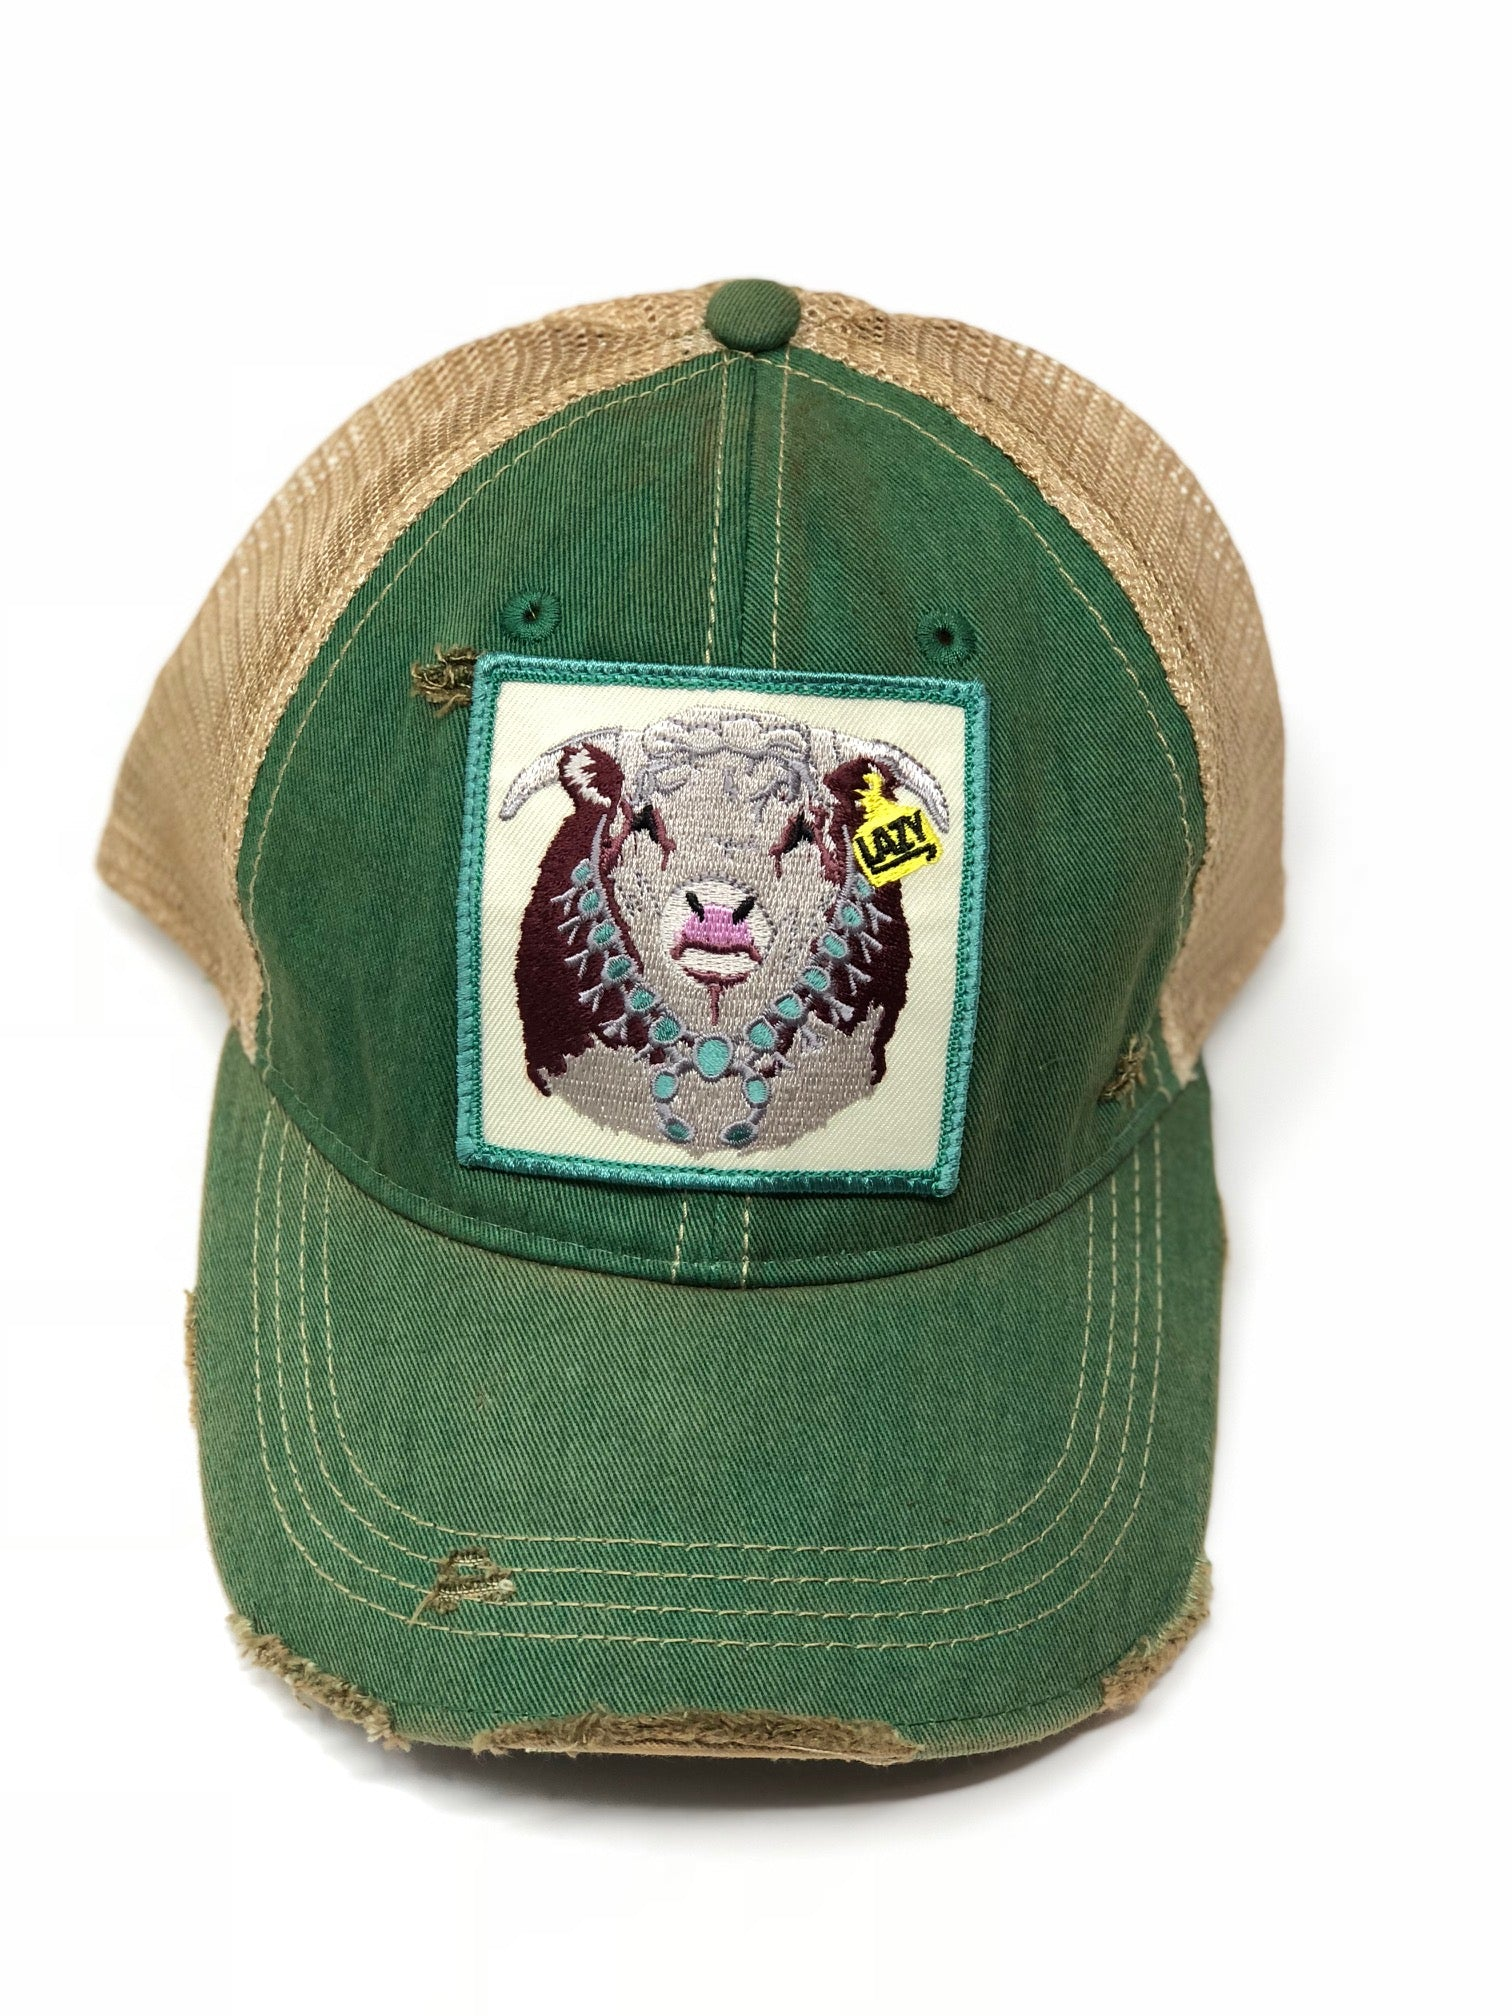 Lazy J Kelly Green & Tan Unstructured Squash Blossom Patch Cap